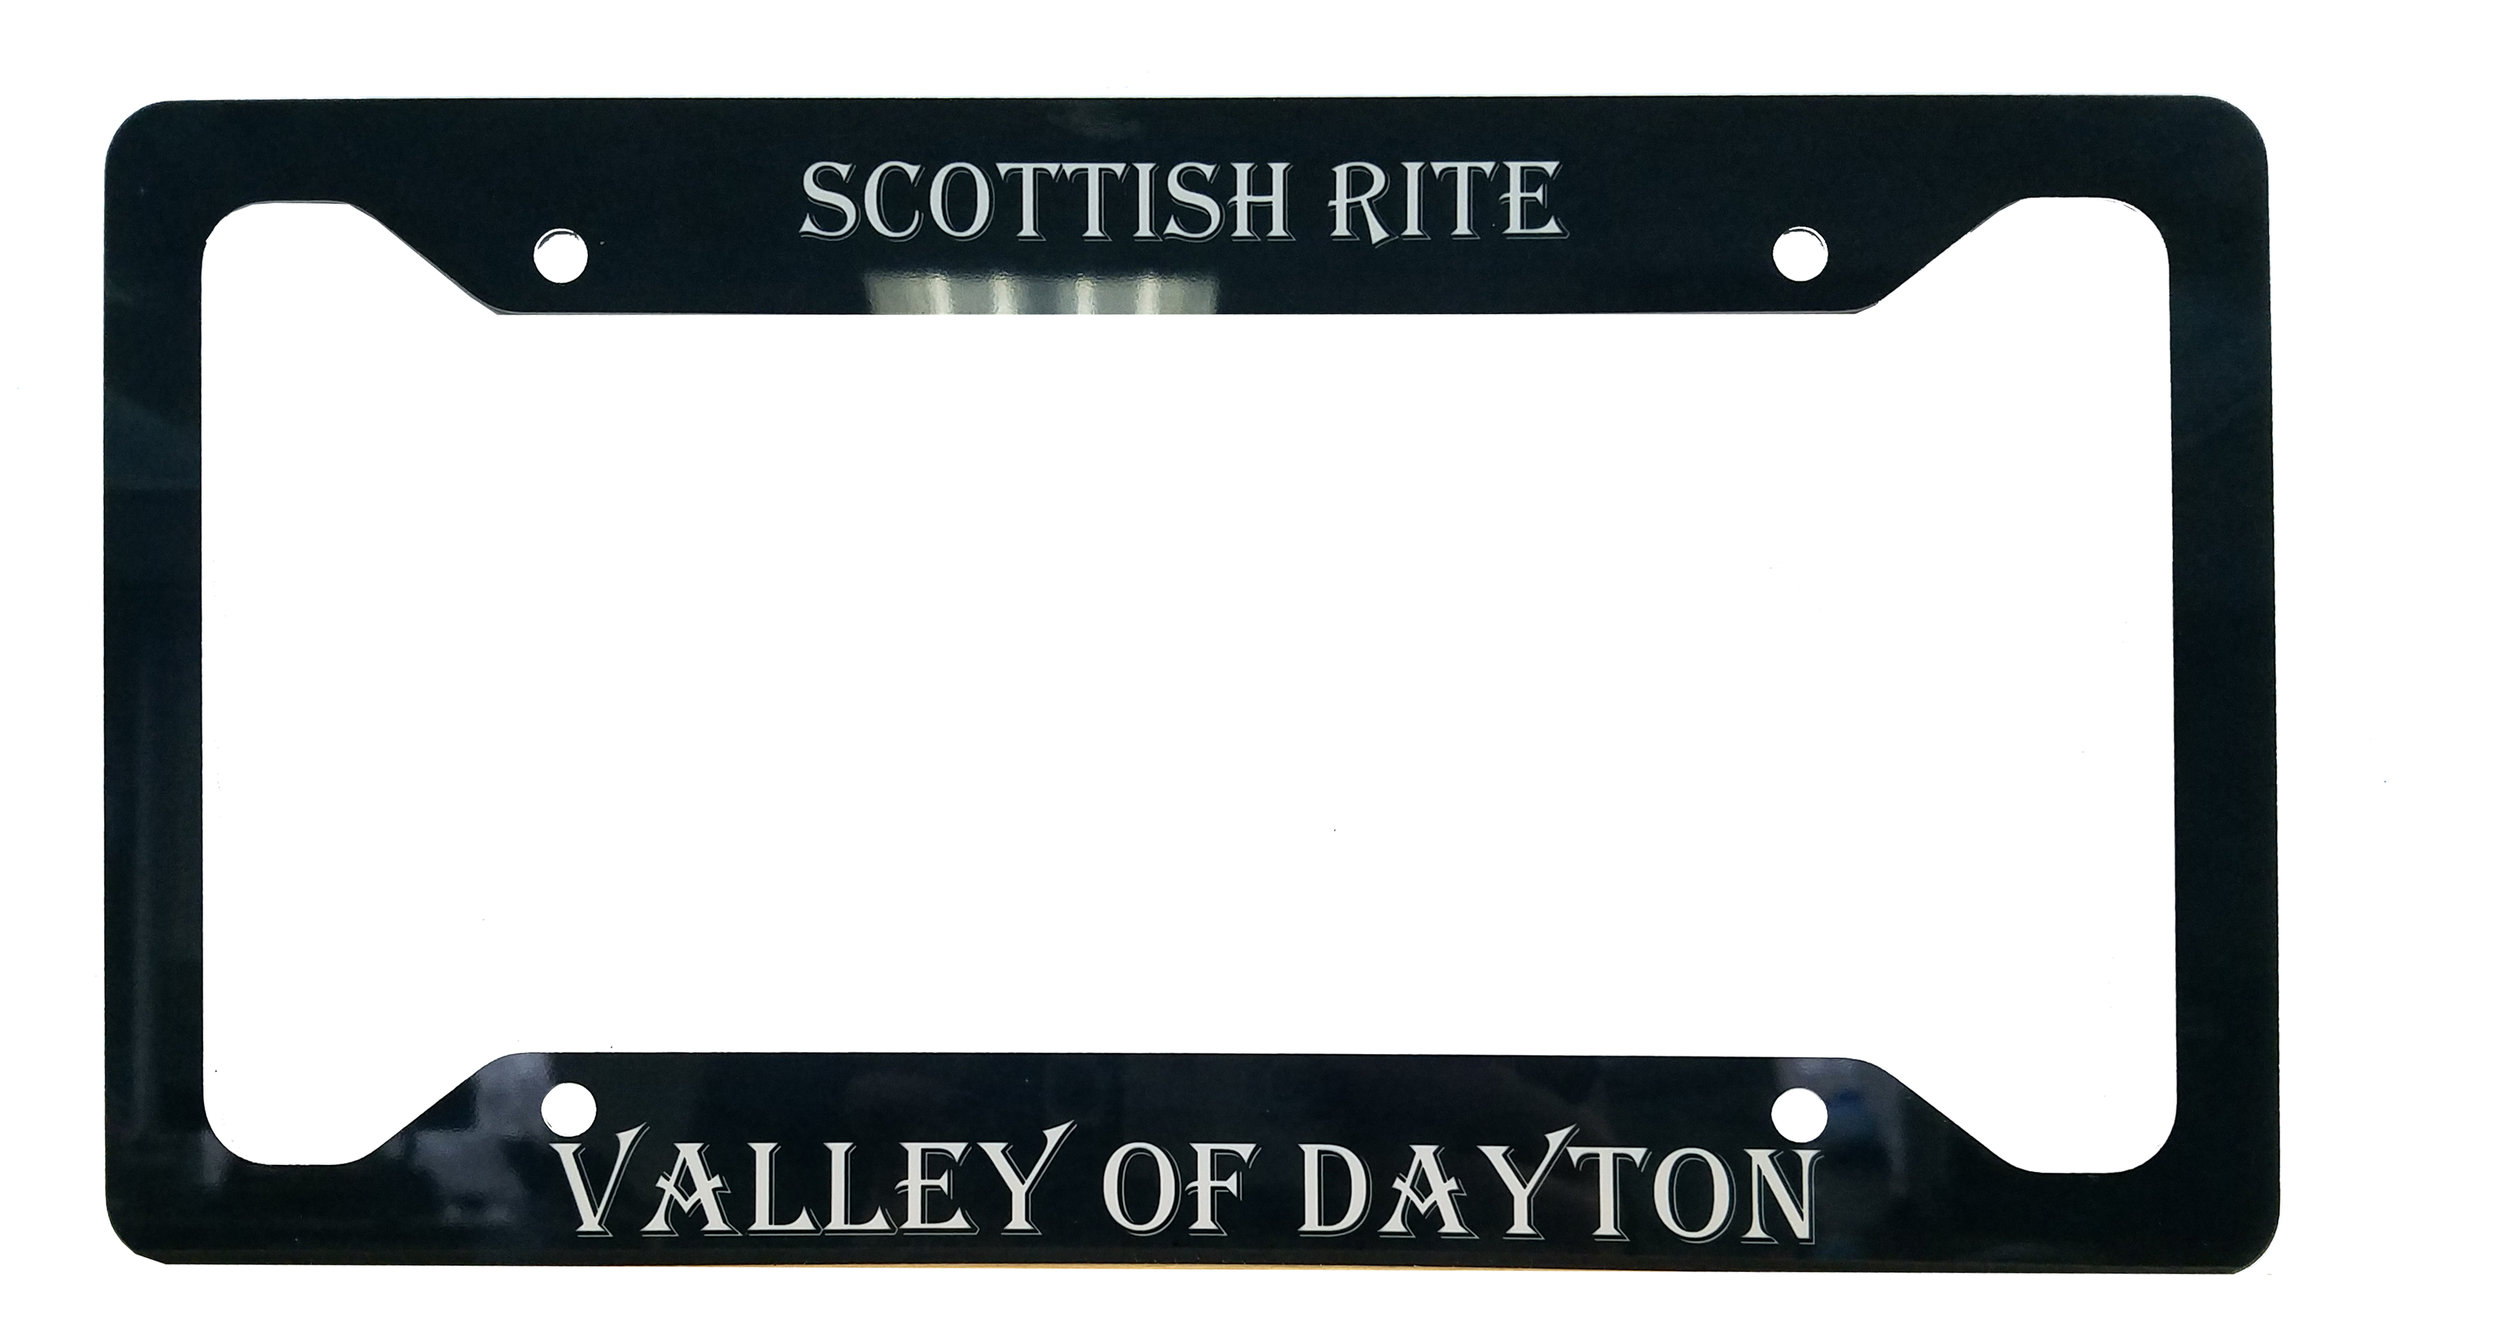 LIcense plate frame copy.jpg